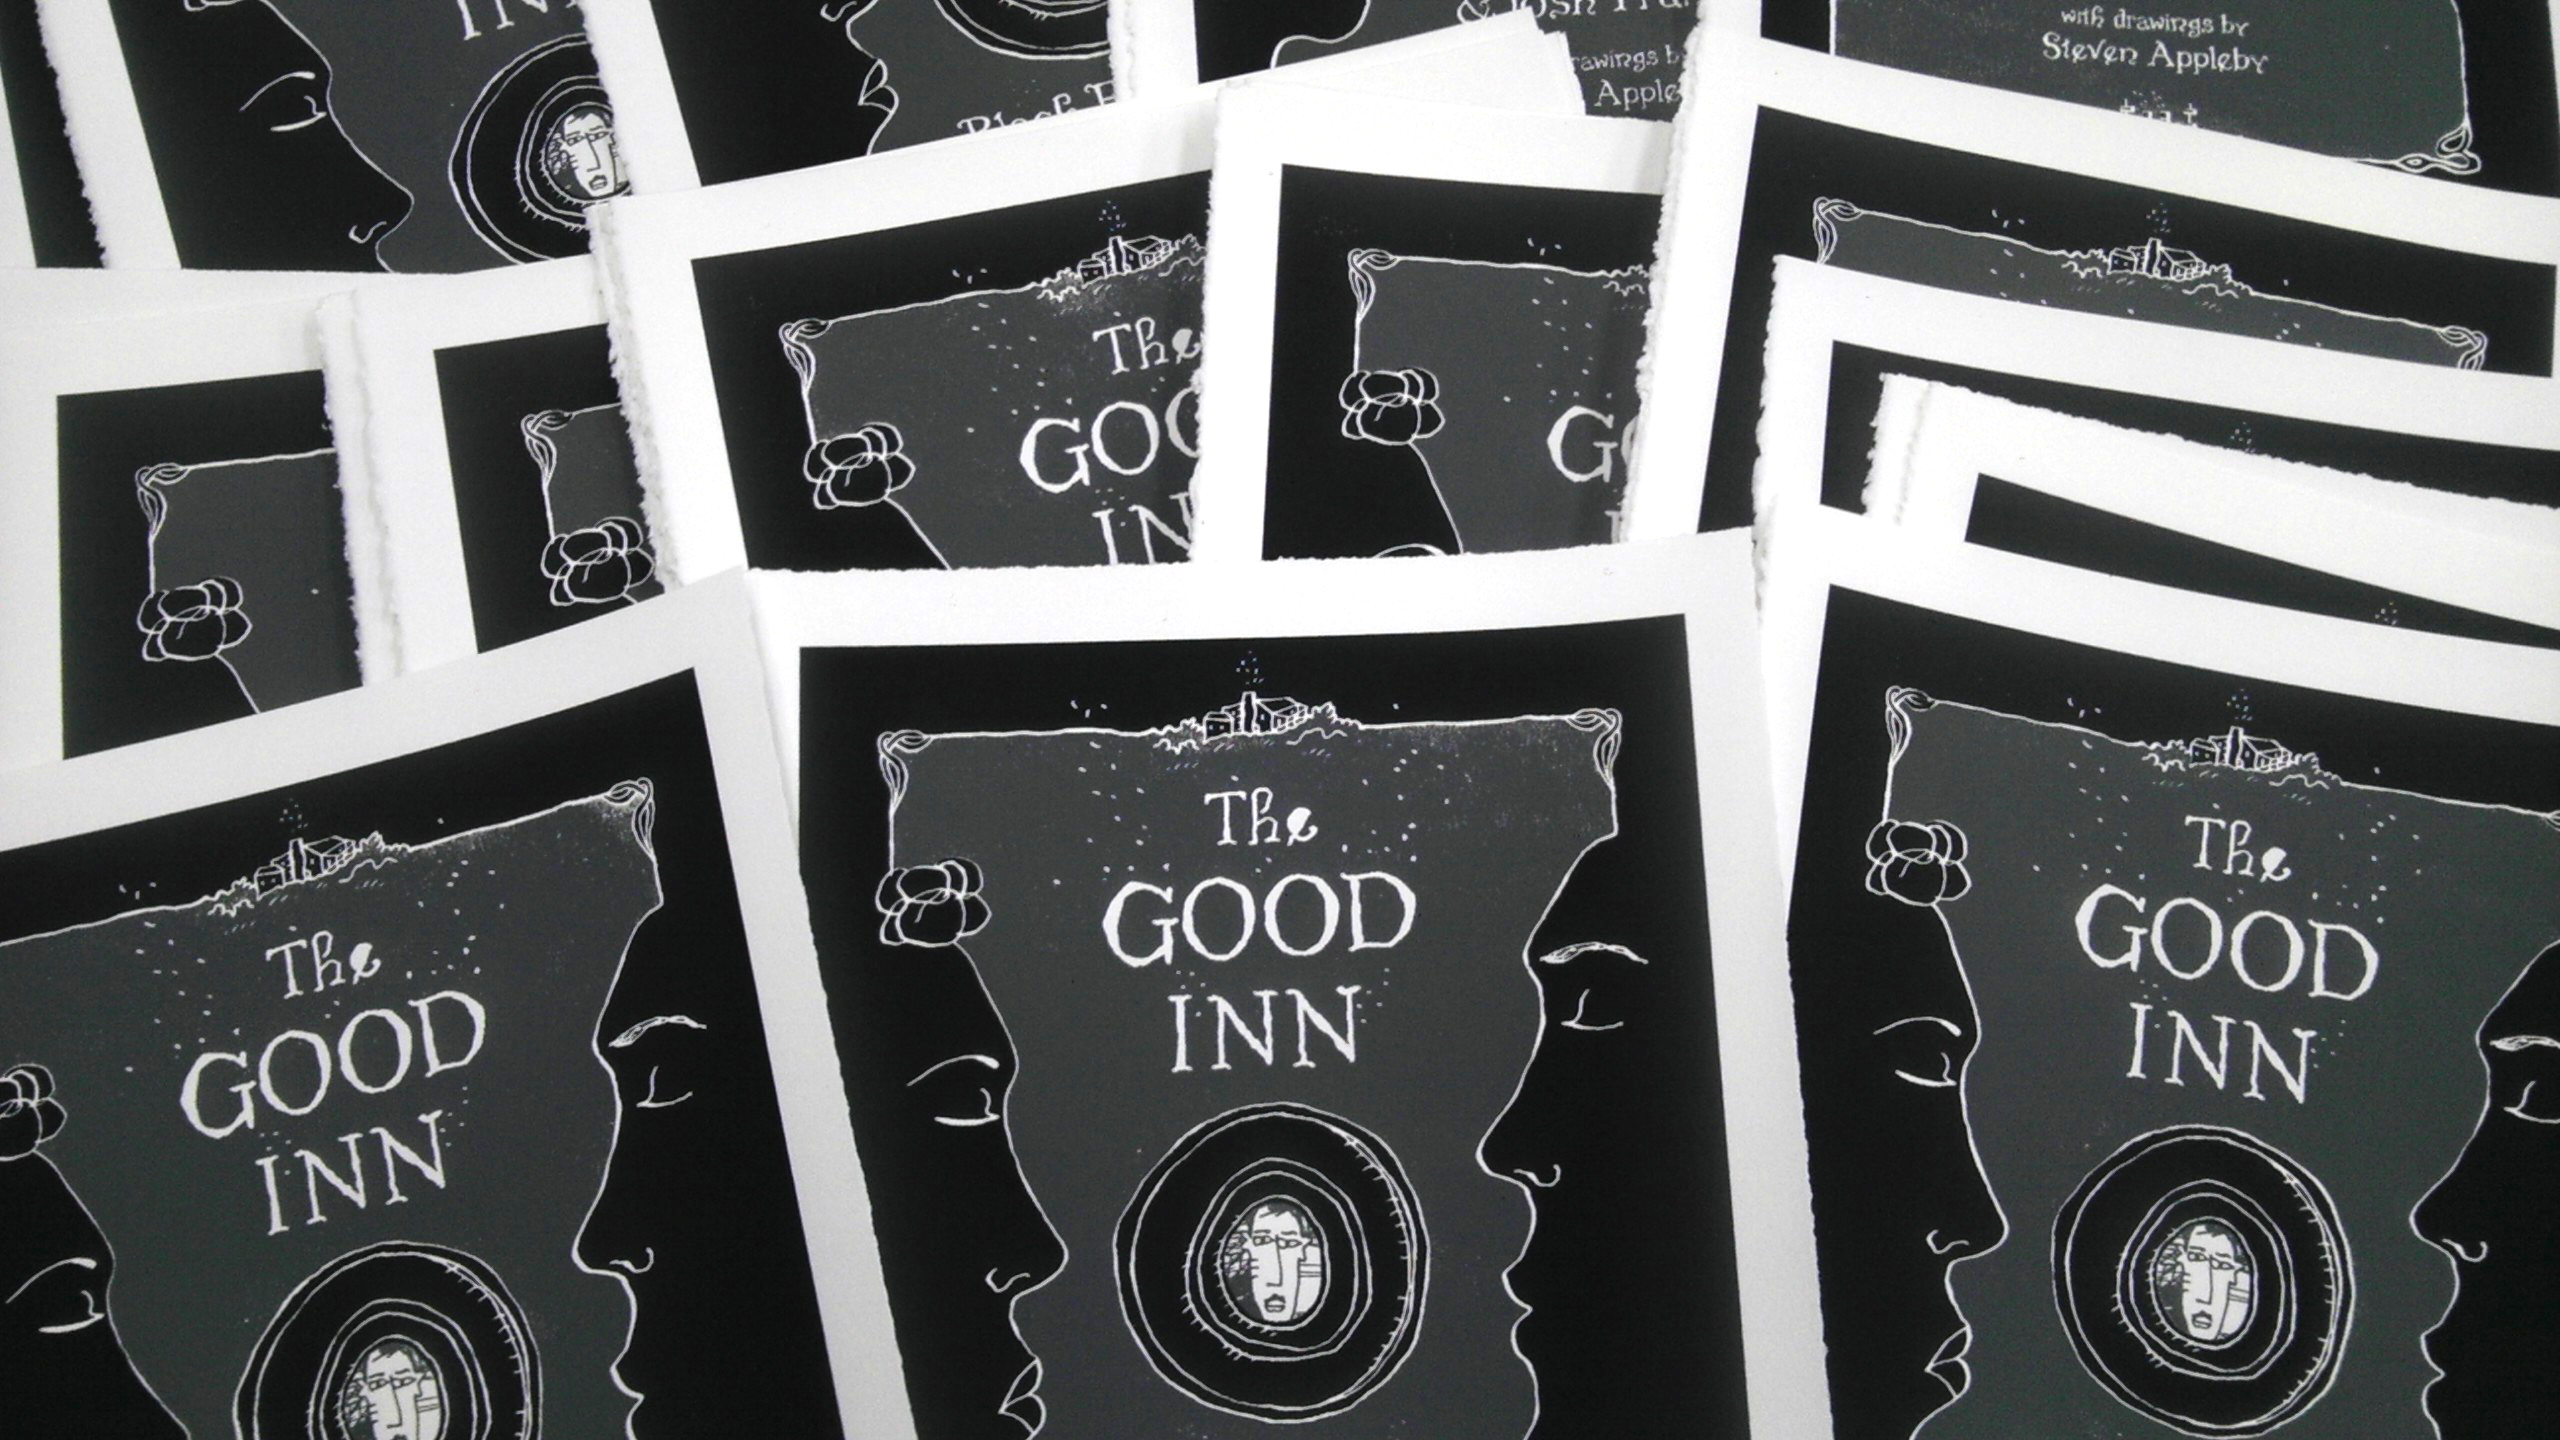 The Good Inn edition